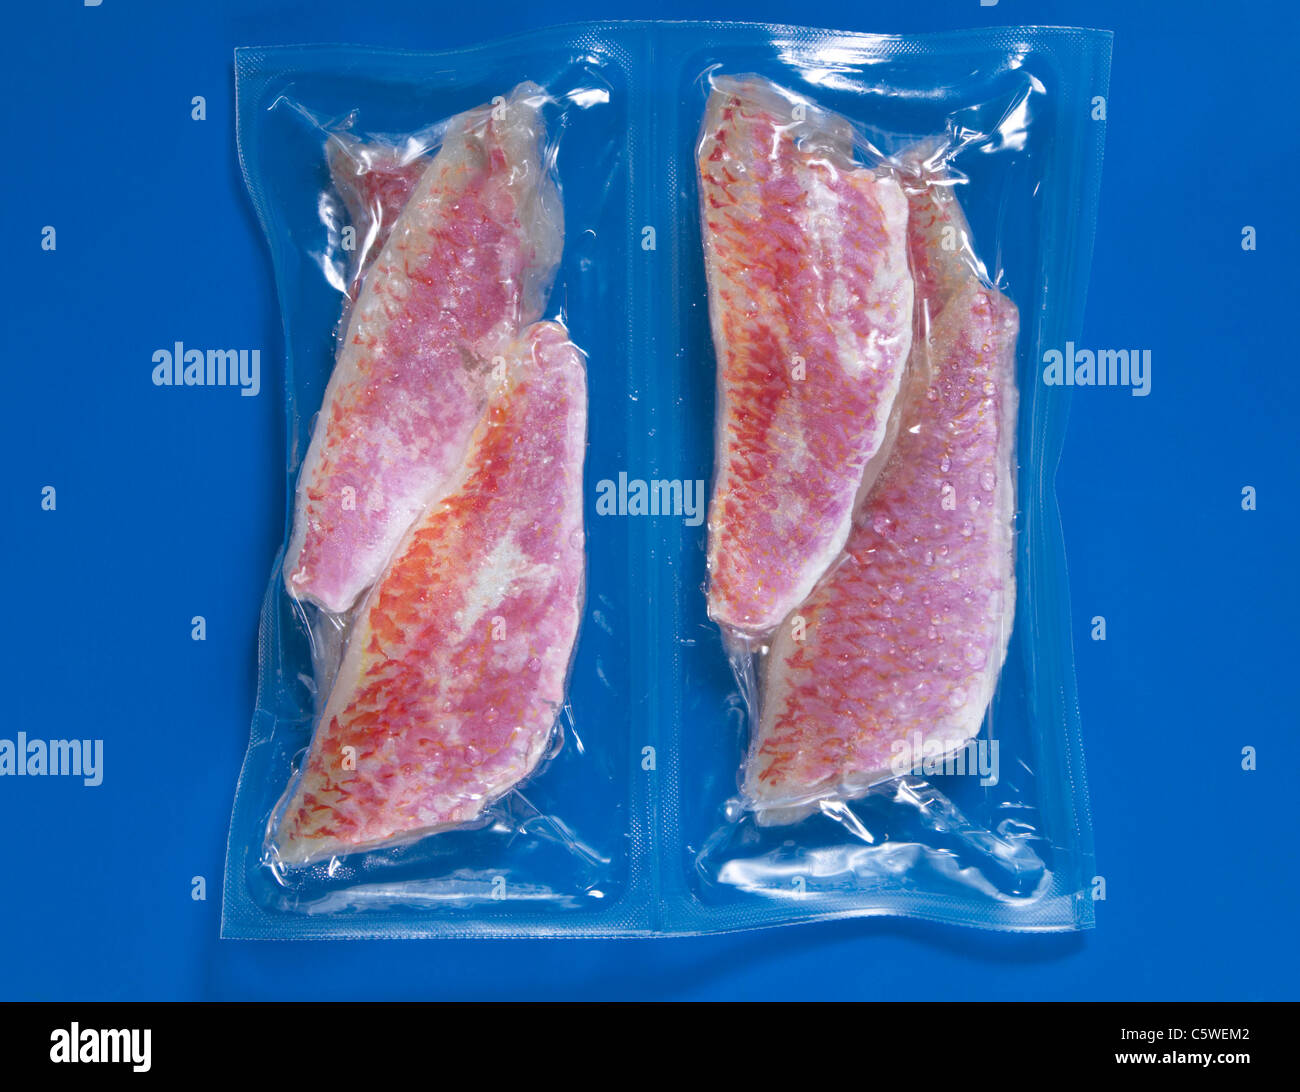 Frozen goatfish vaccuum packed, elevated view - Stock Image